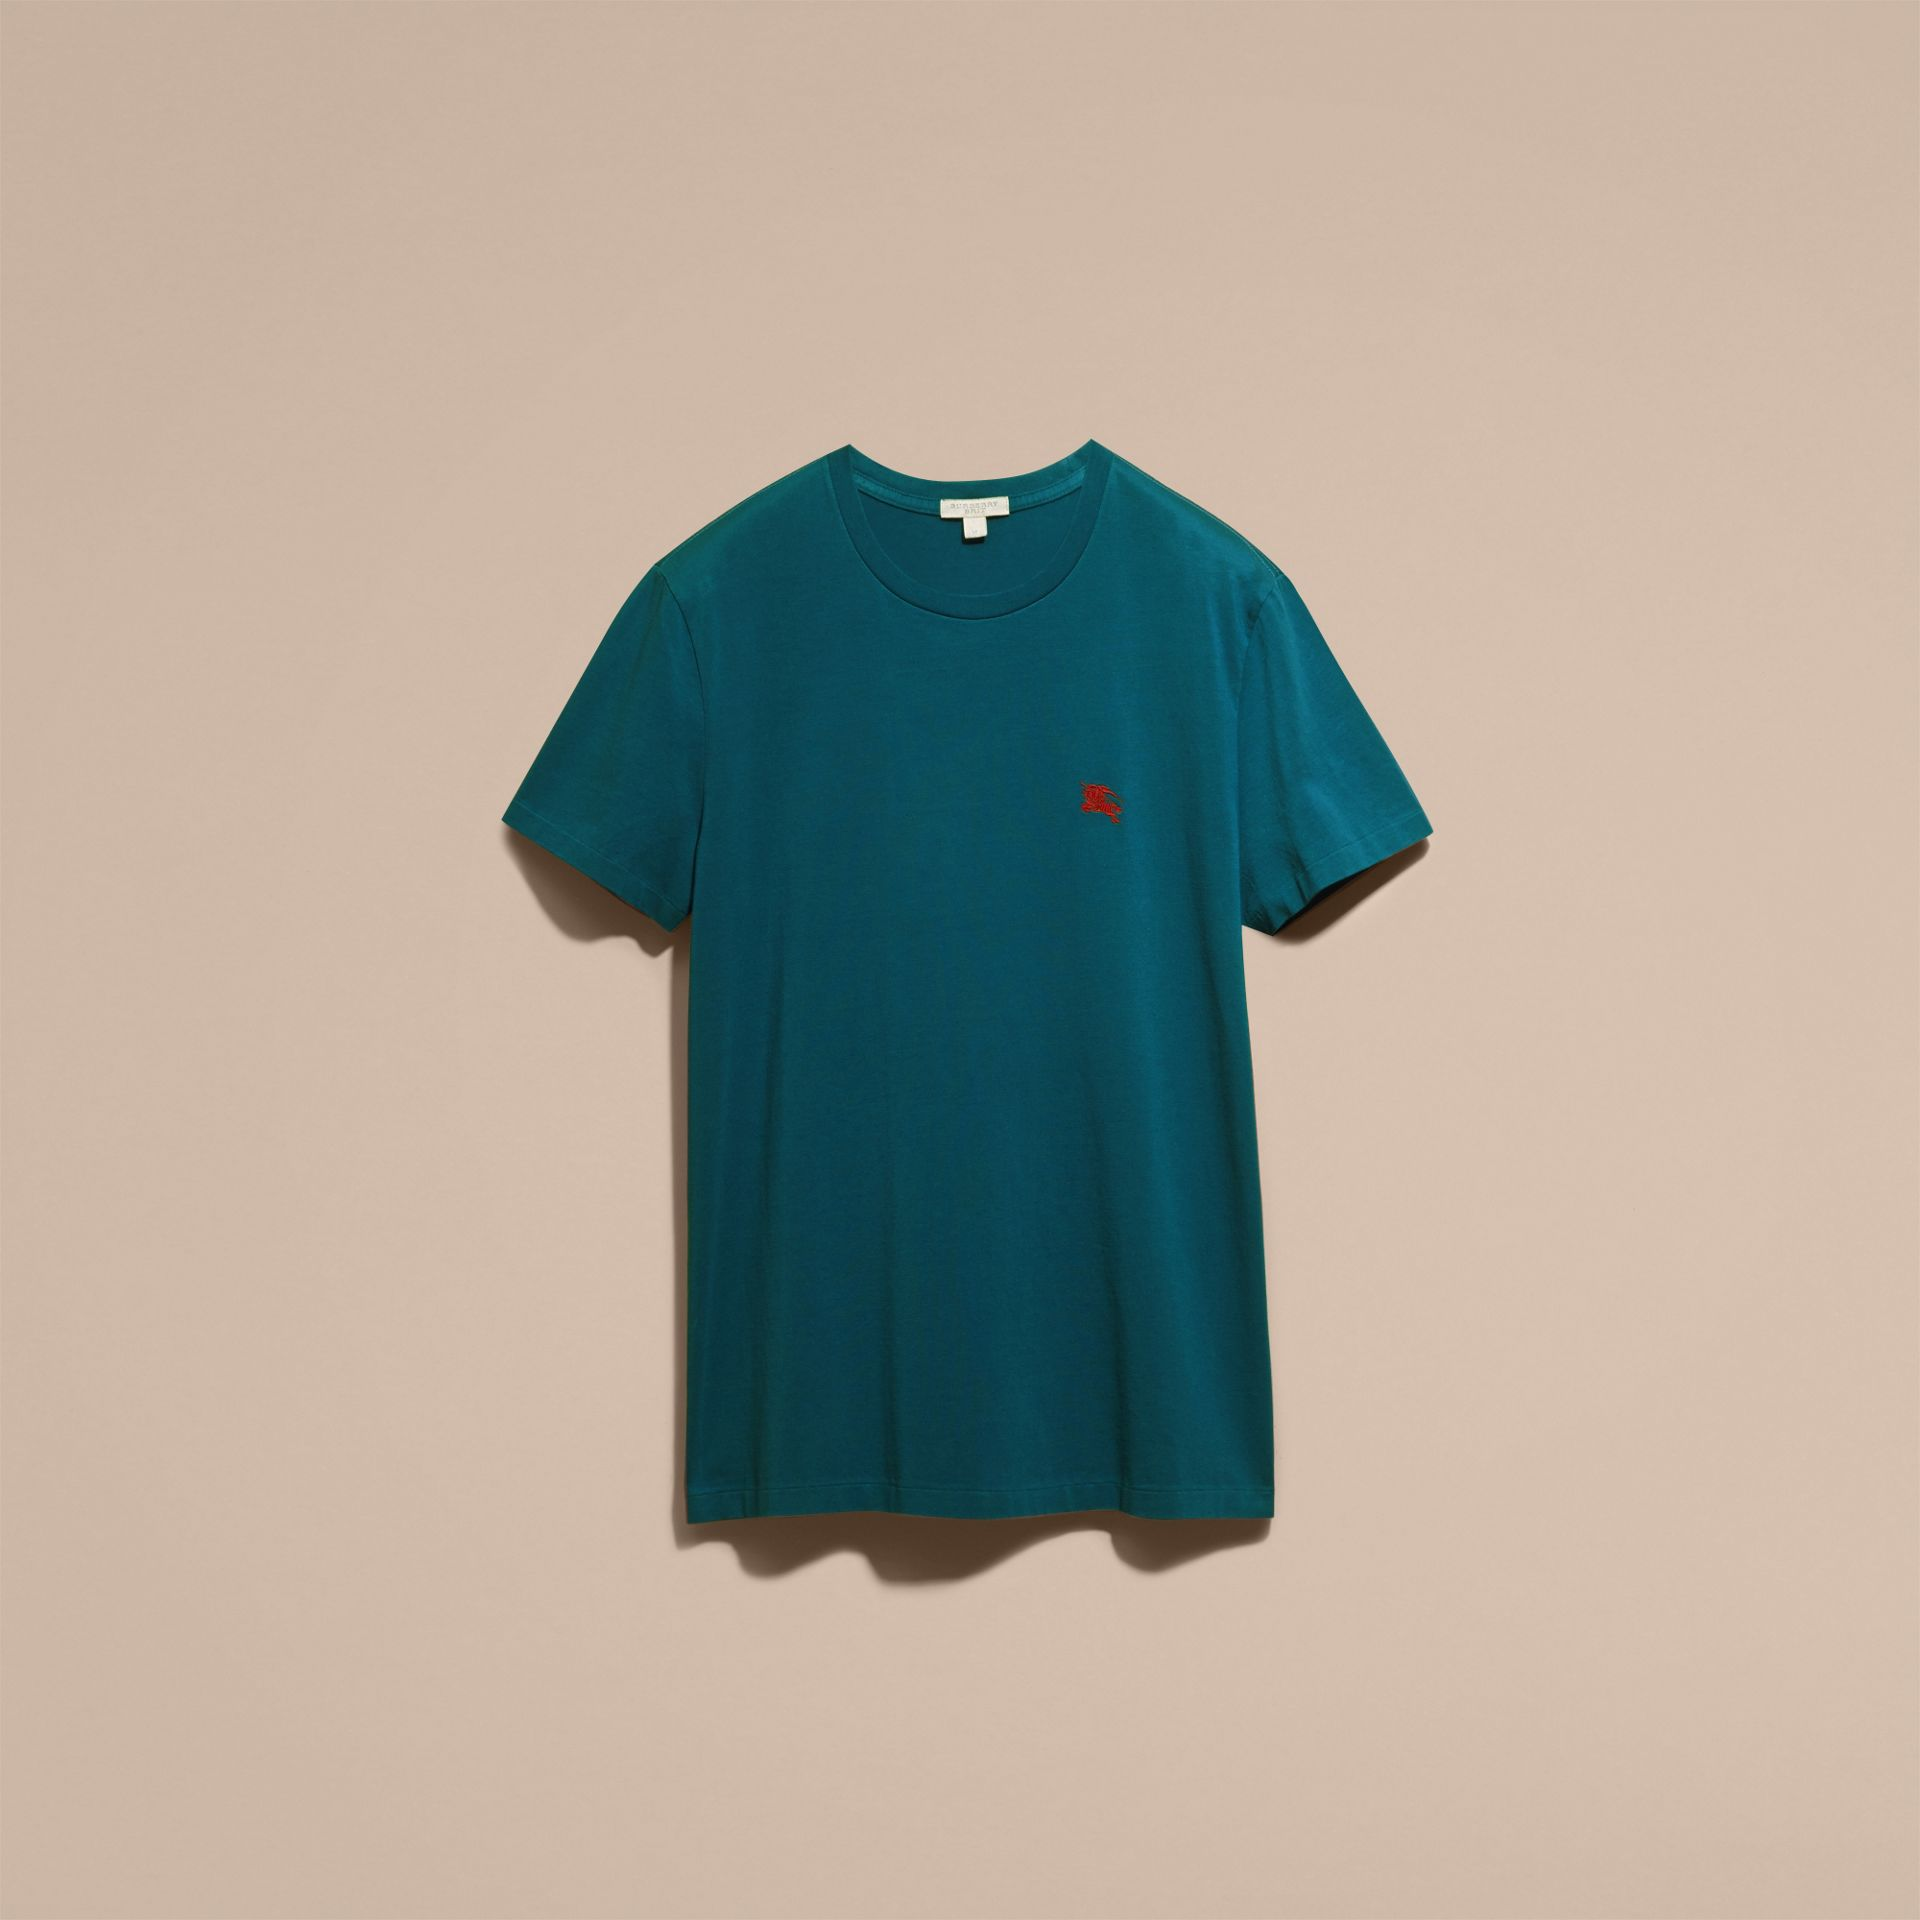 Cotton Jersey T-shirt in Mineral Blue - Men | Burberry - gallery image 3